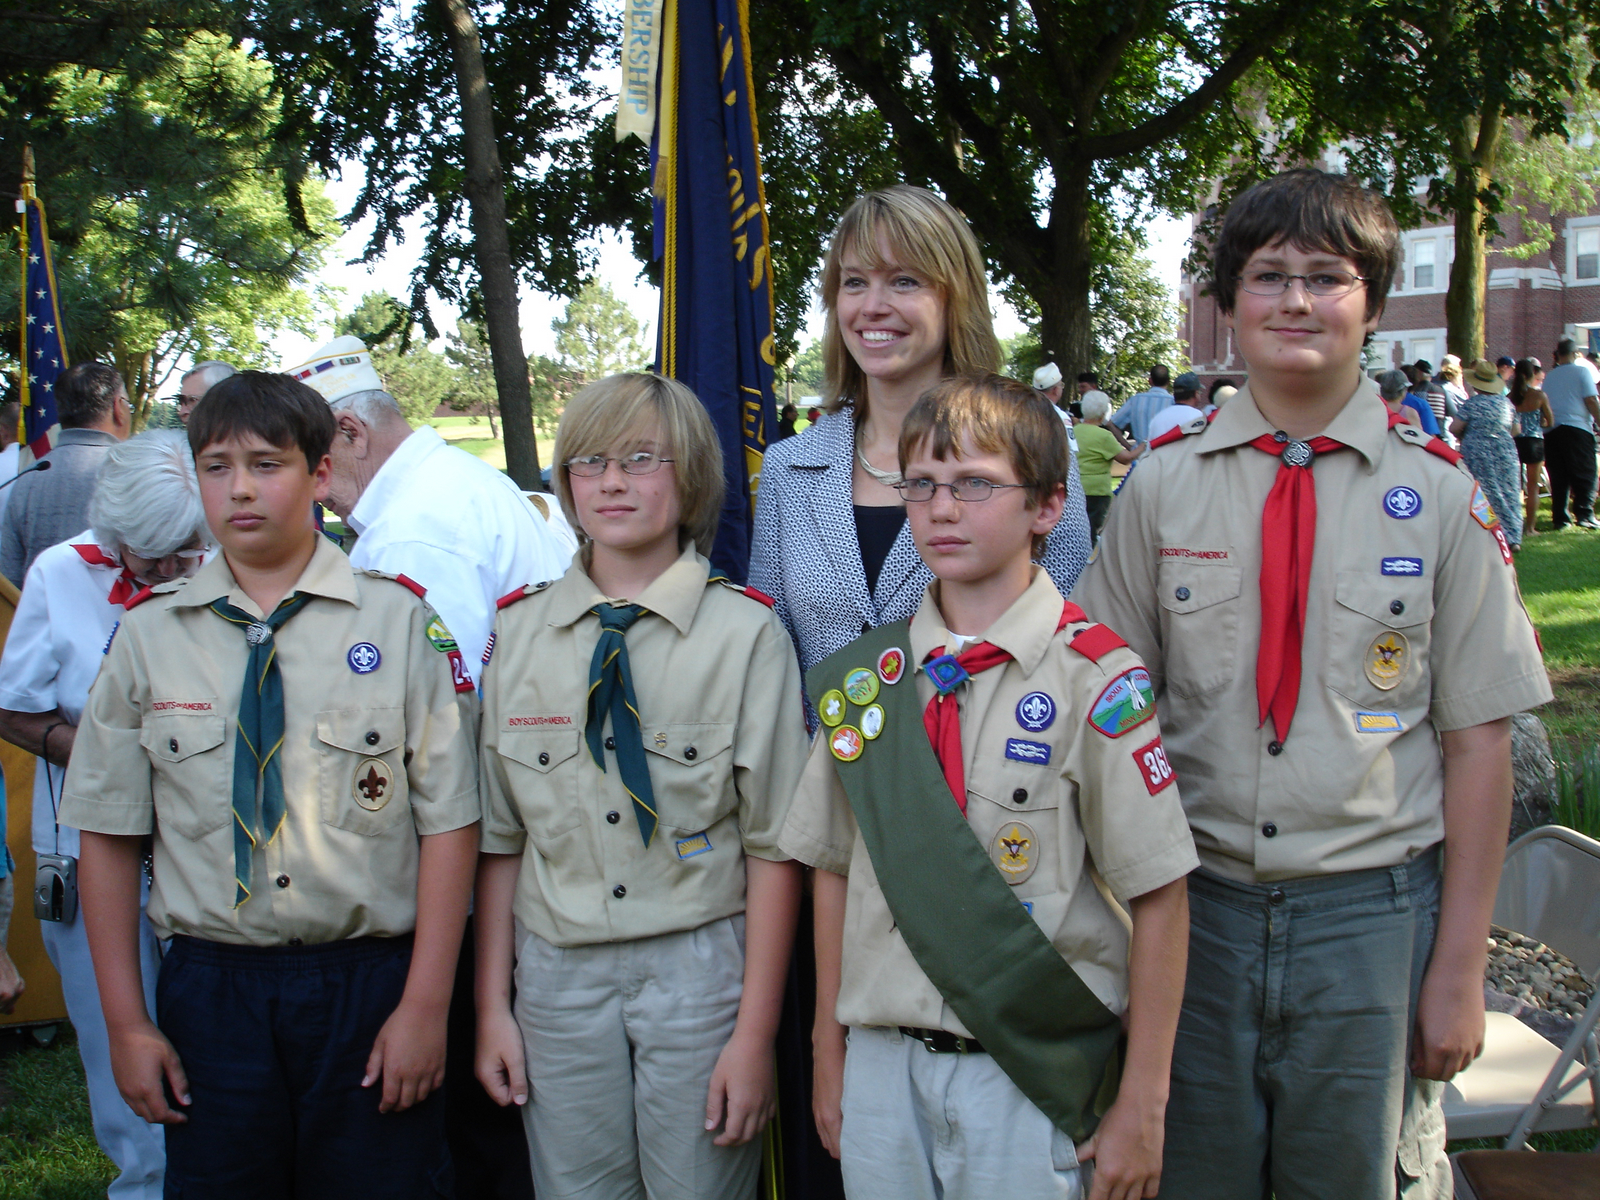 essay boy scouts why not try order a custom written essay from us